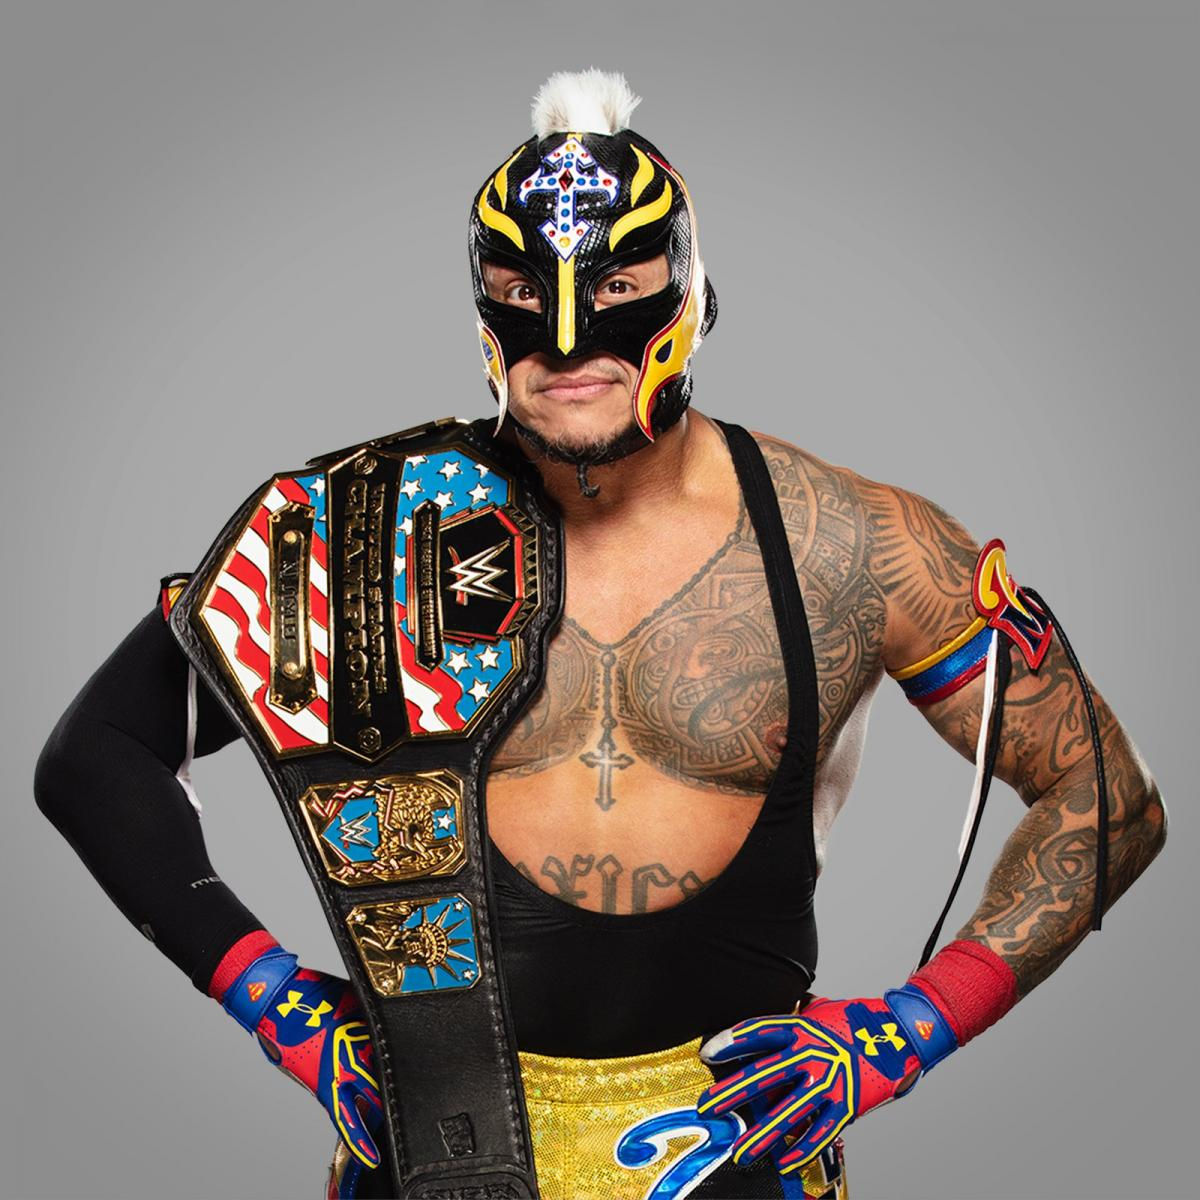 Take a look at @reymysterio FLYING into the #USTitle Hall of Fame!